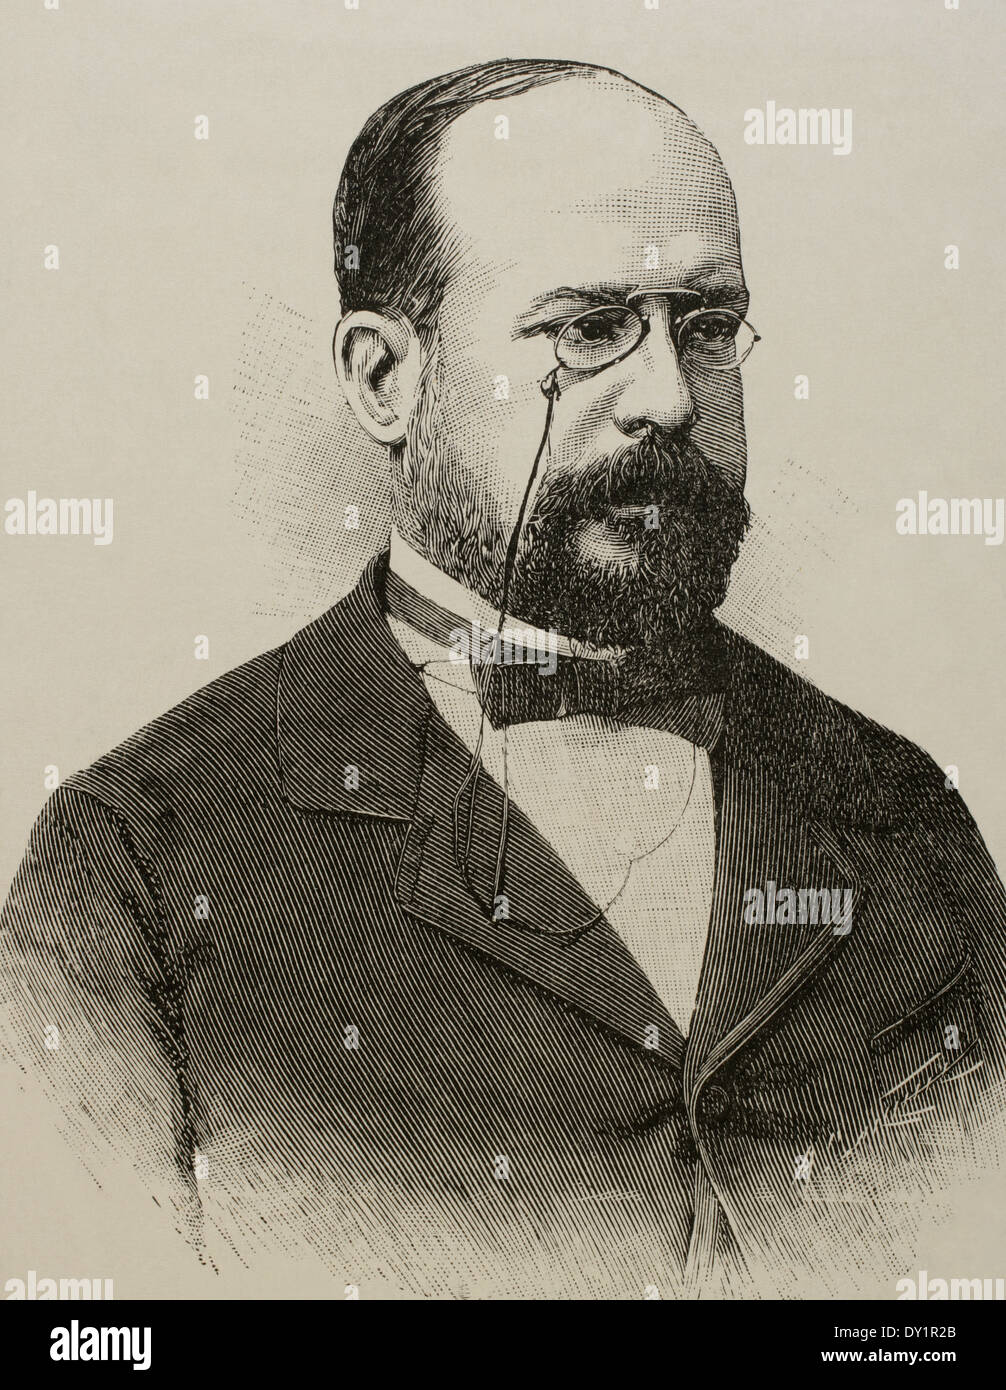 Eduardo Leon y Ortiz (19th century). Spanish professor at the Faculty of Sciences of the Central University. Stock Photo